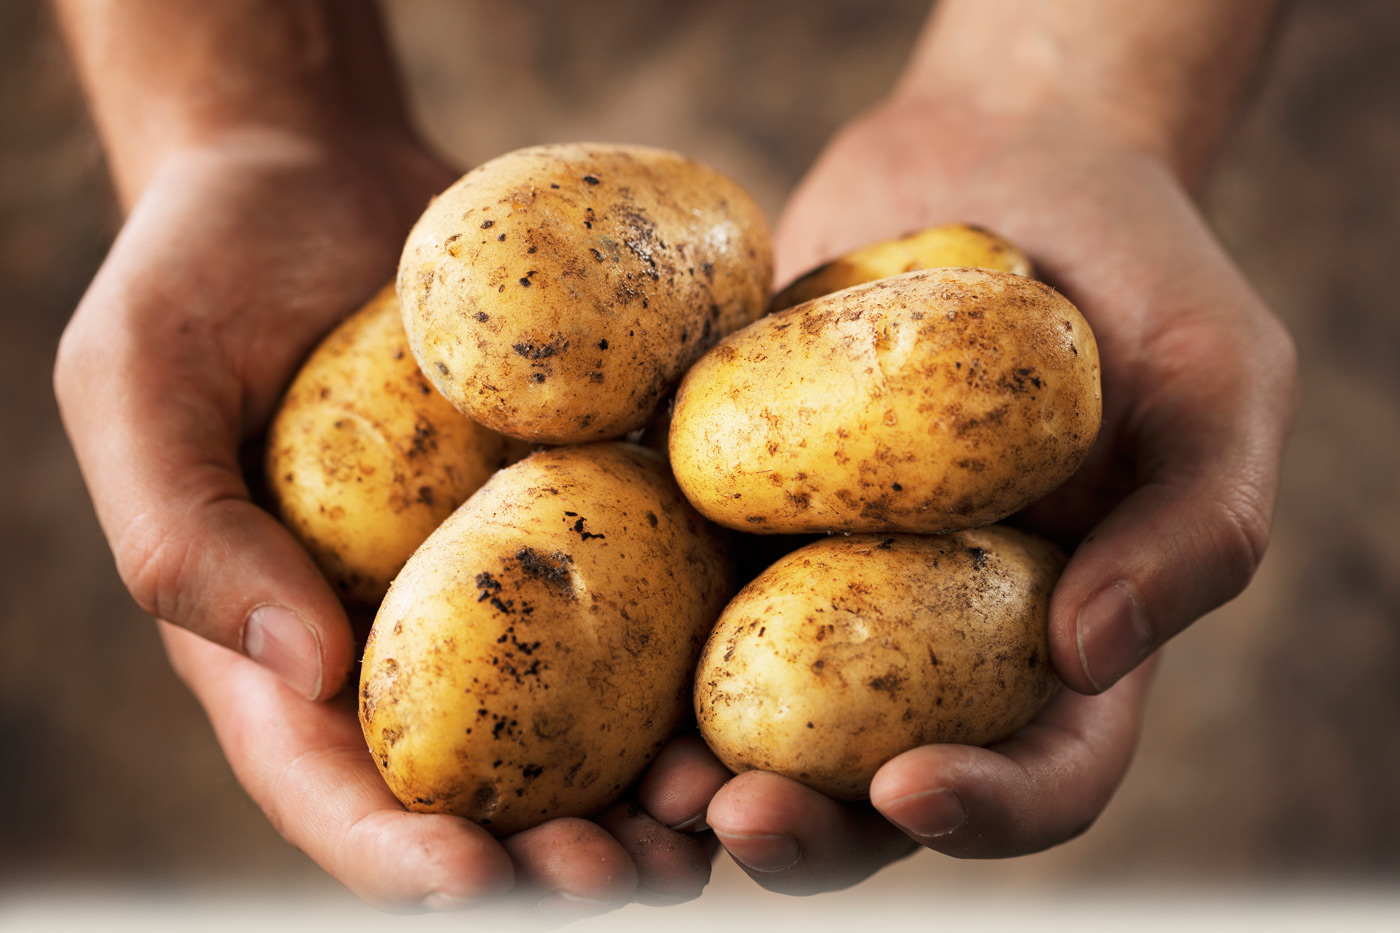 Image: Hands holding a pile of potatoes. Image for spud facts